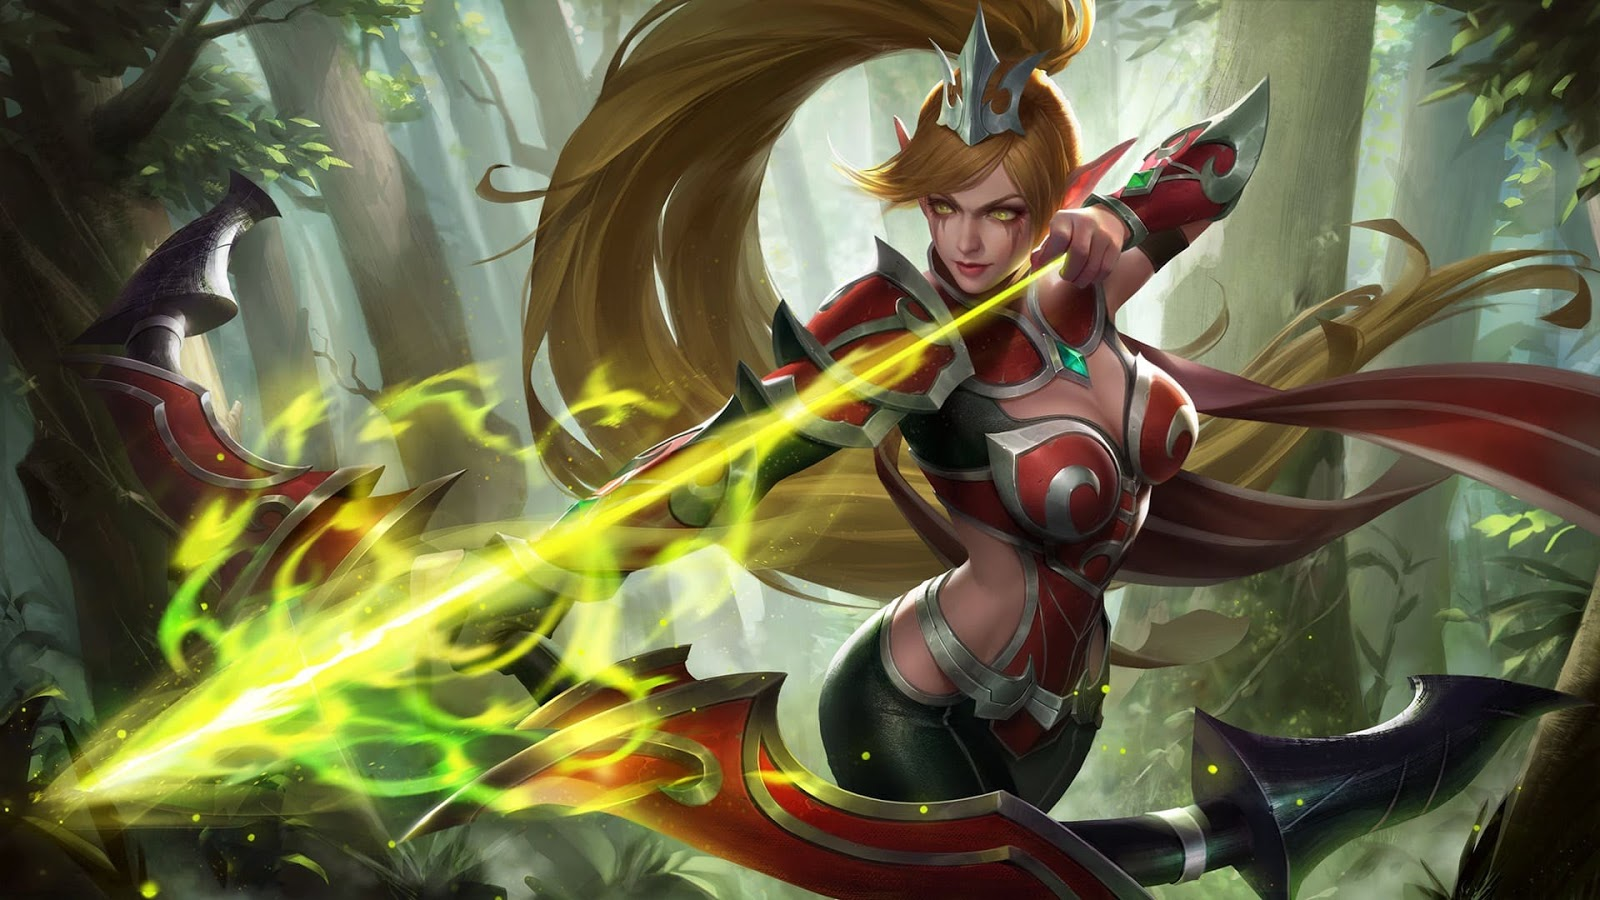 Wallpaper Miya Burning Bow Skin Mobile Legends HD for PC